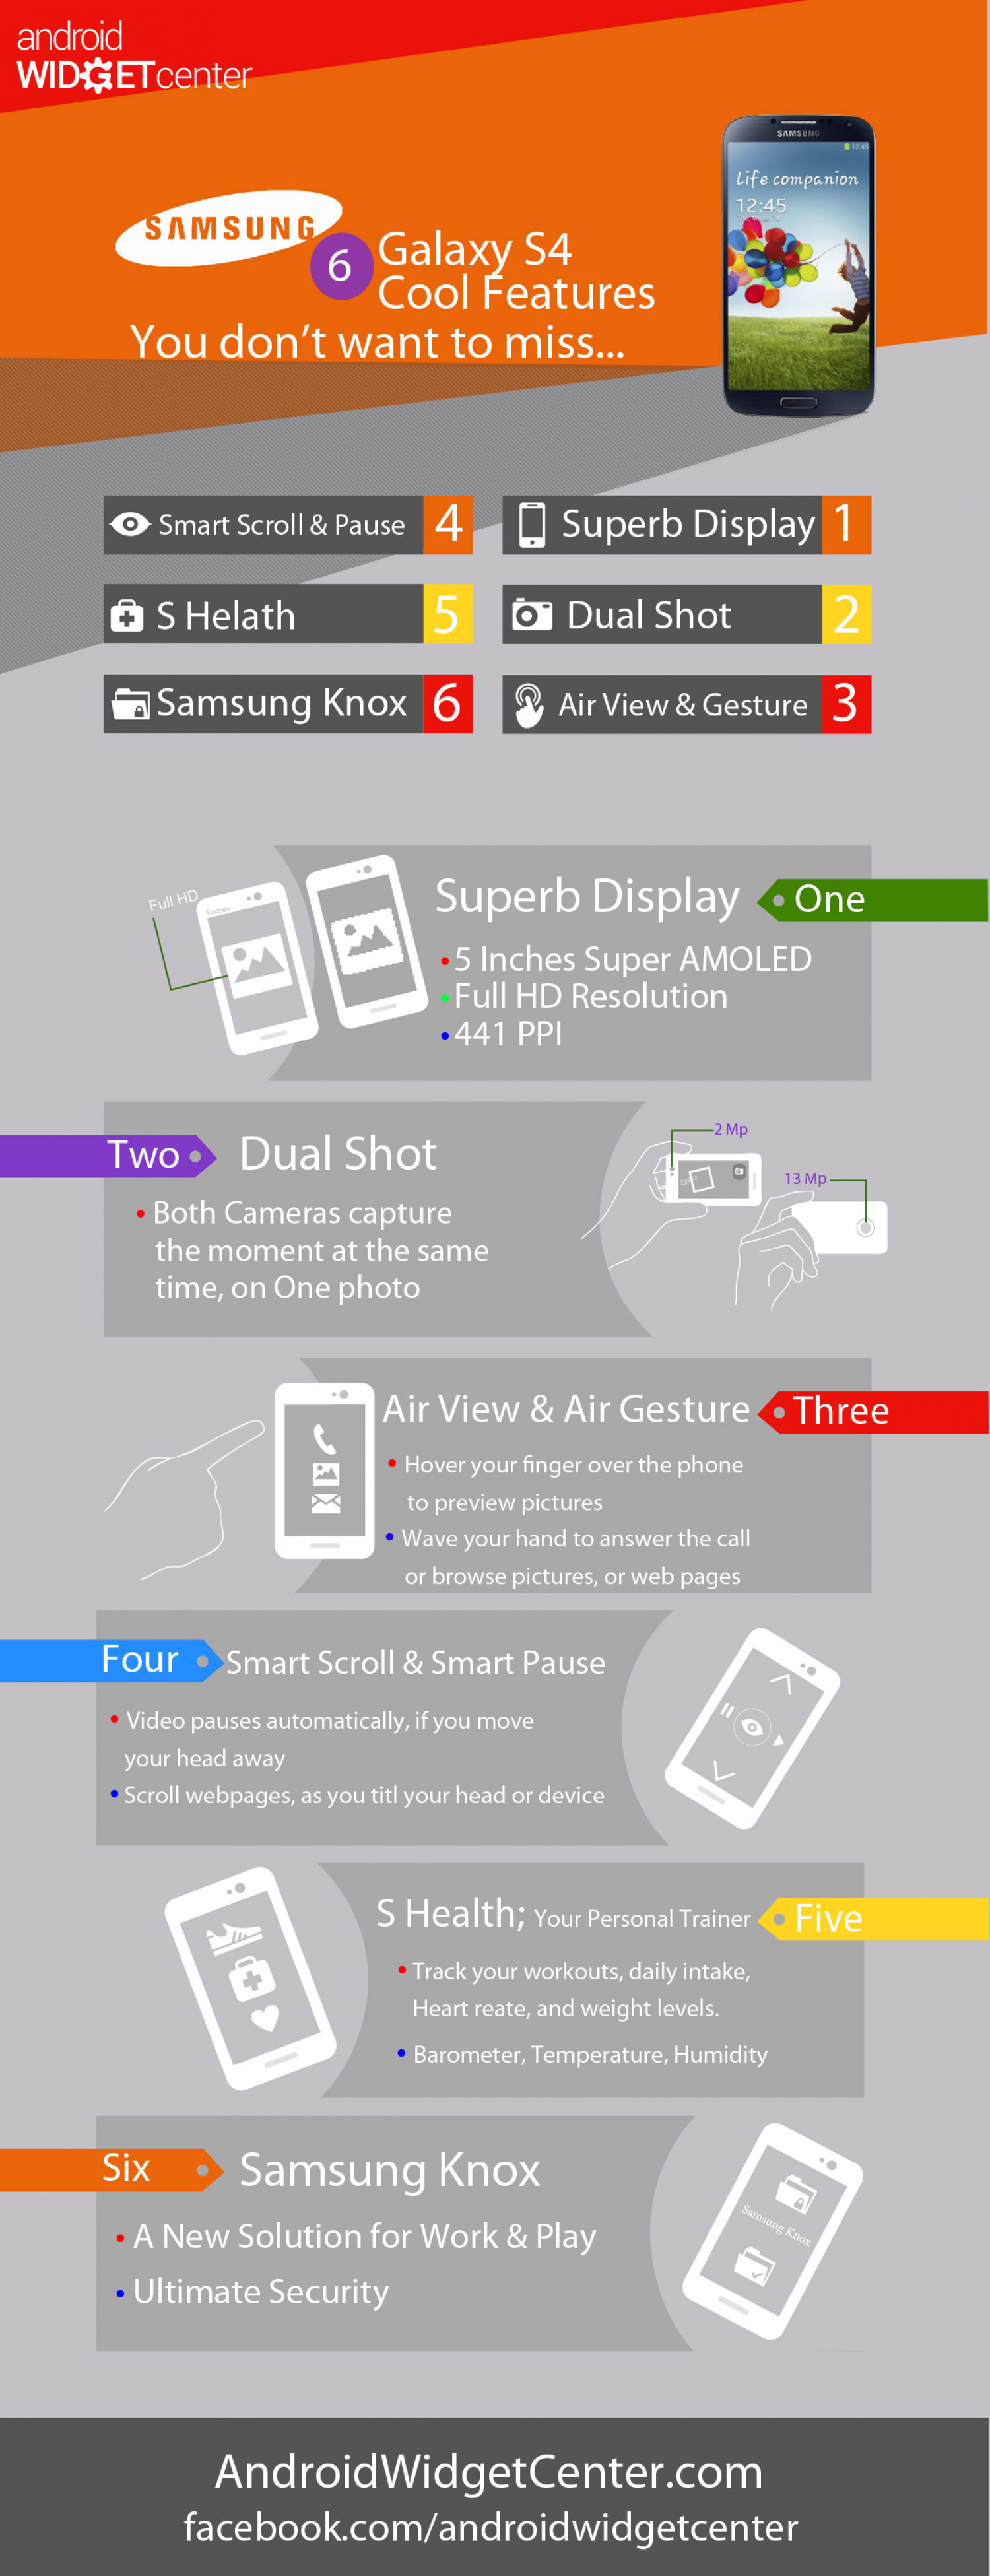 Galaxy S4 Cool Features Infographic